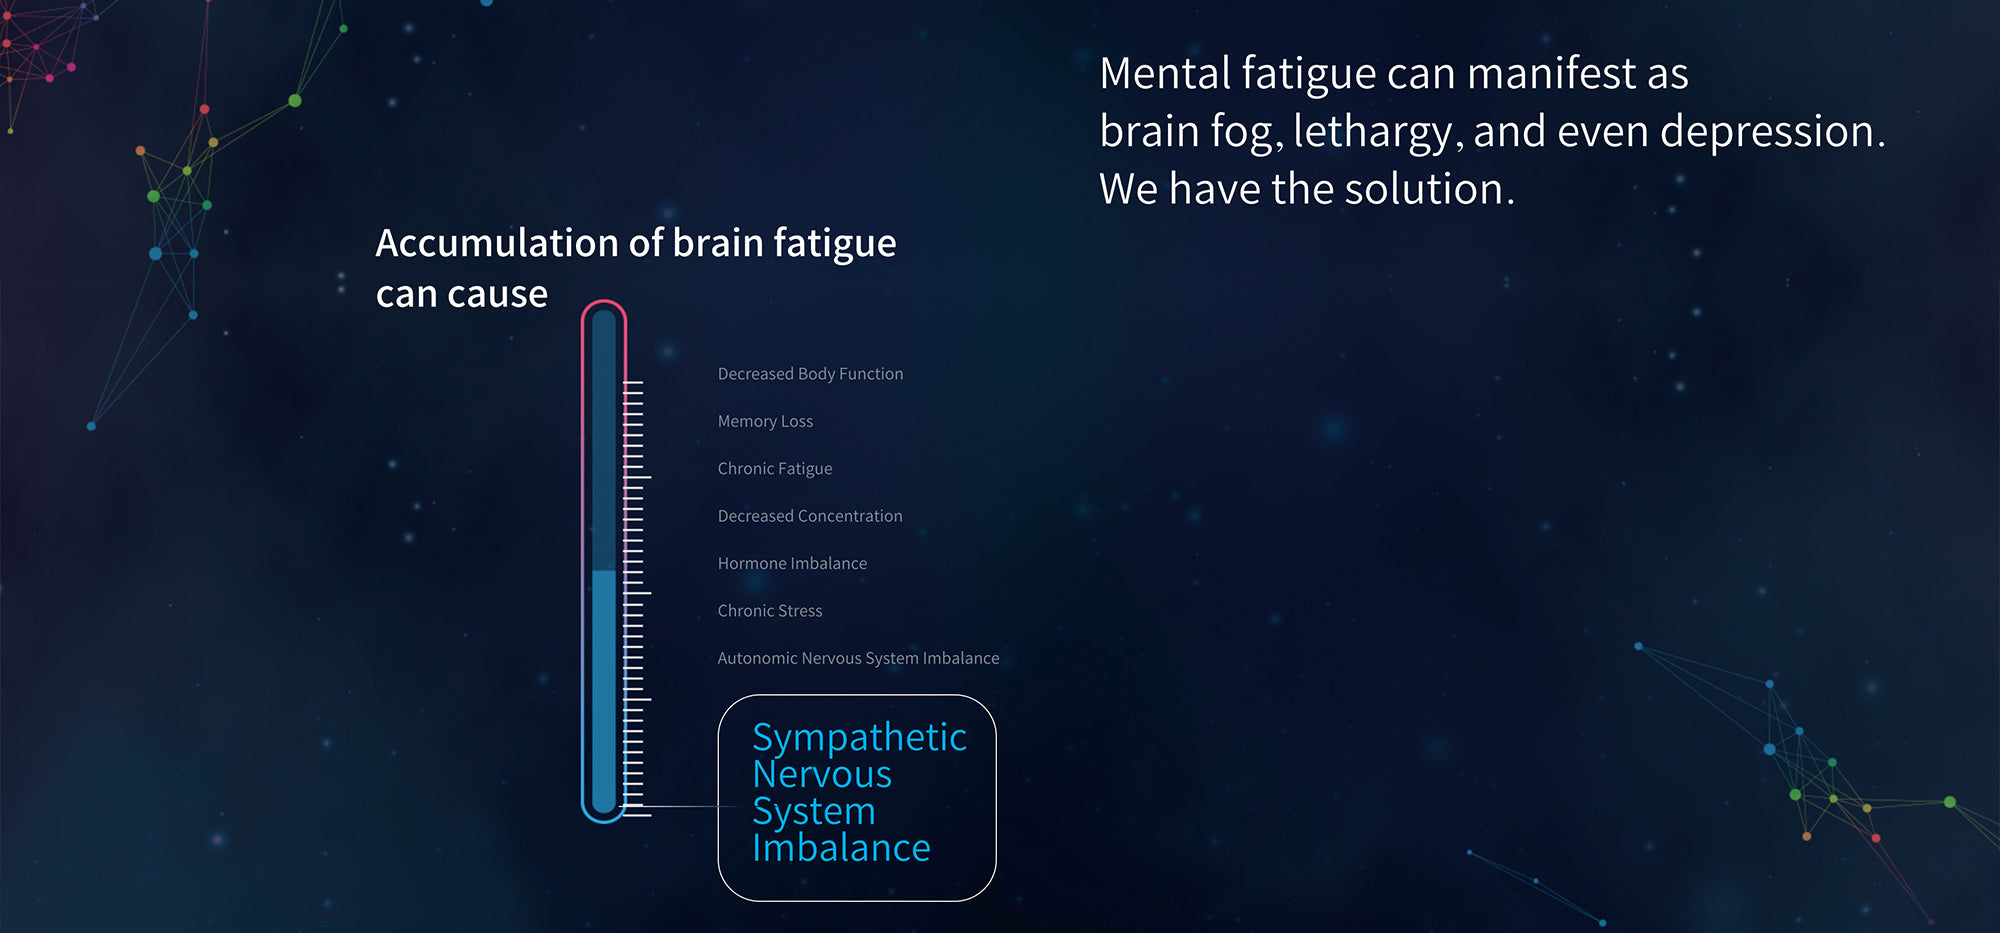 We Have Solution To Mental Fatigue, That Can Manifest As Brain Fog, Lethargy, And Even Depression